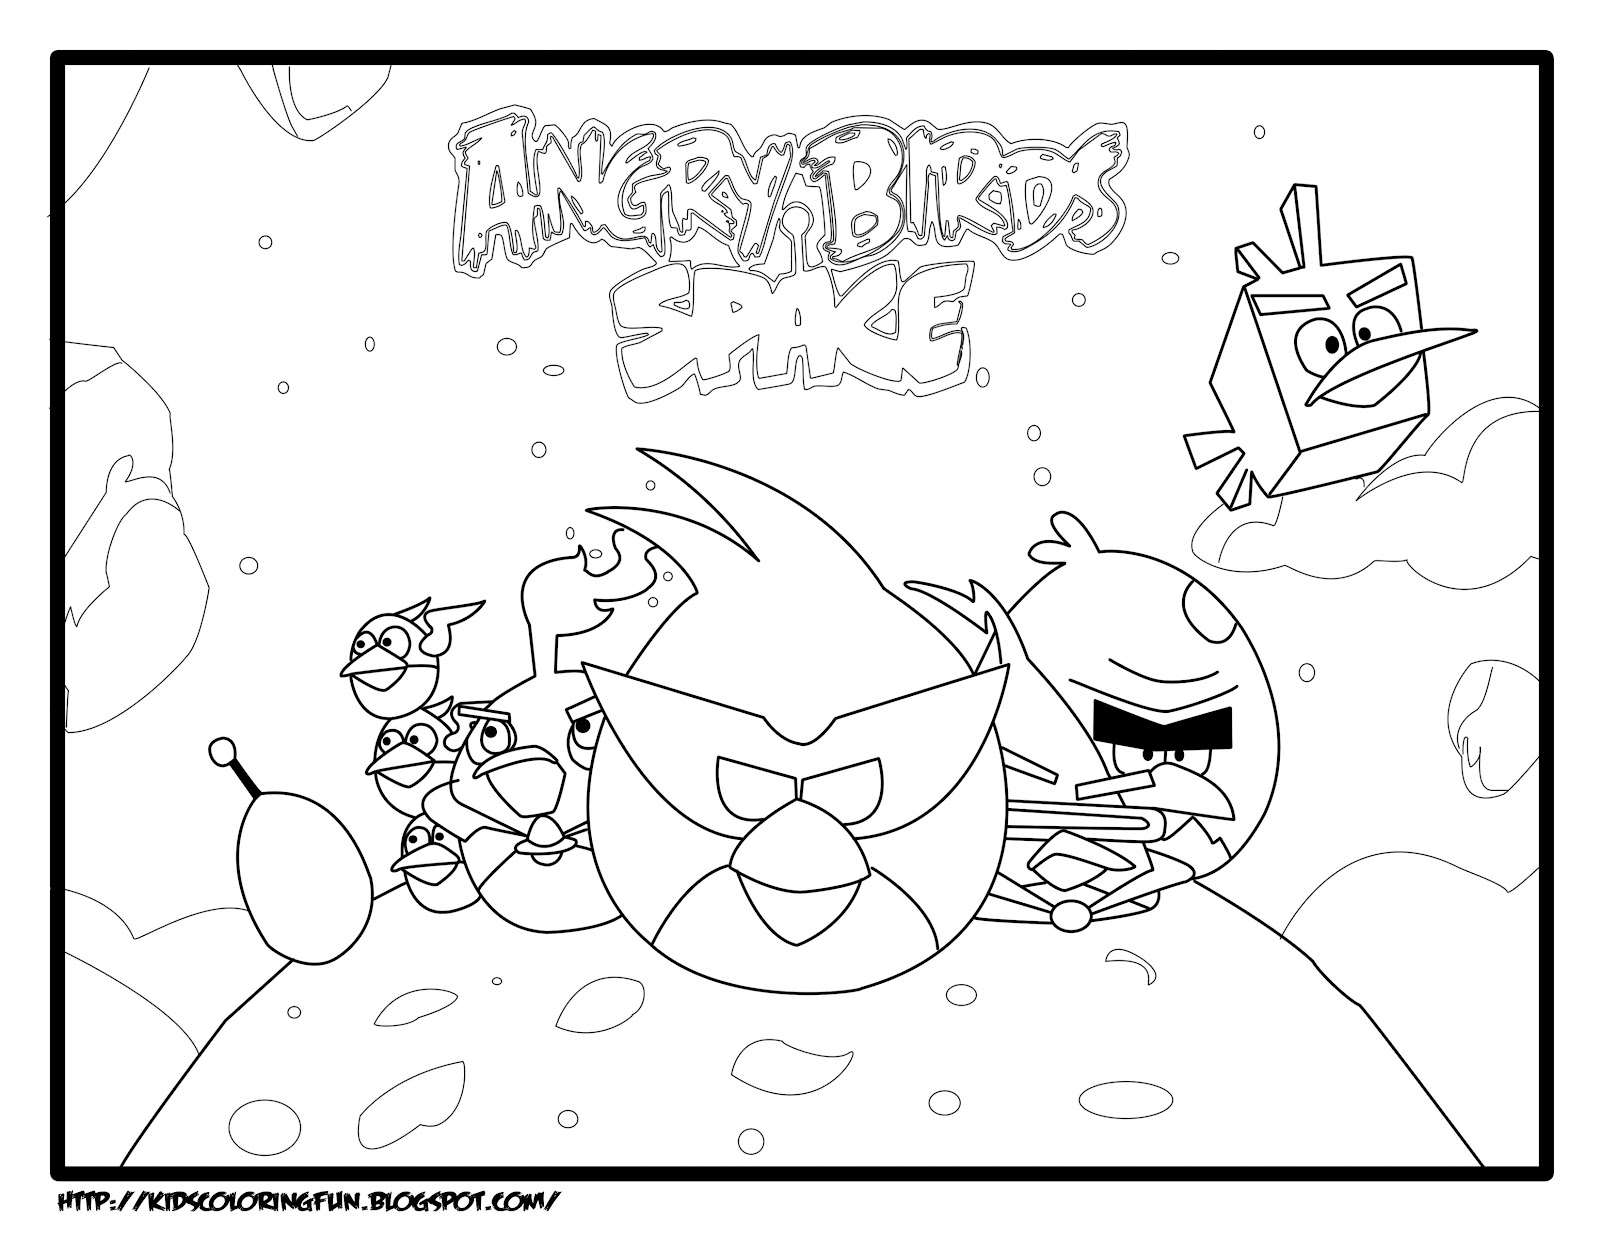 1600x1236 Free Angry Birds Space Coloring Pages To Print